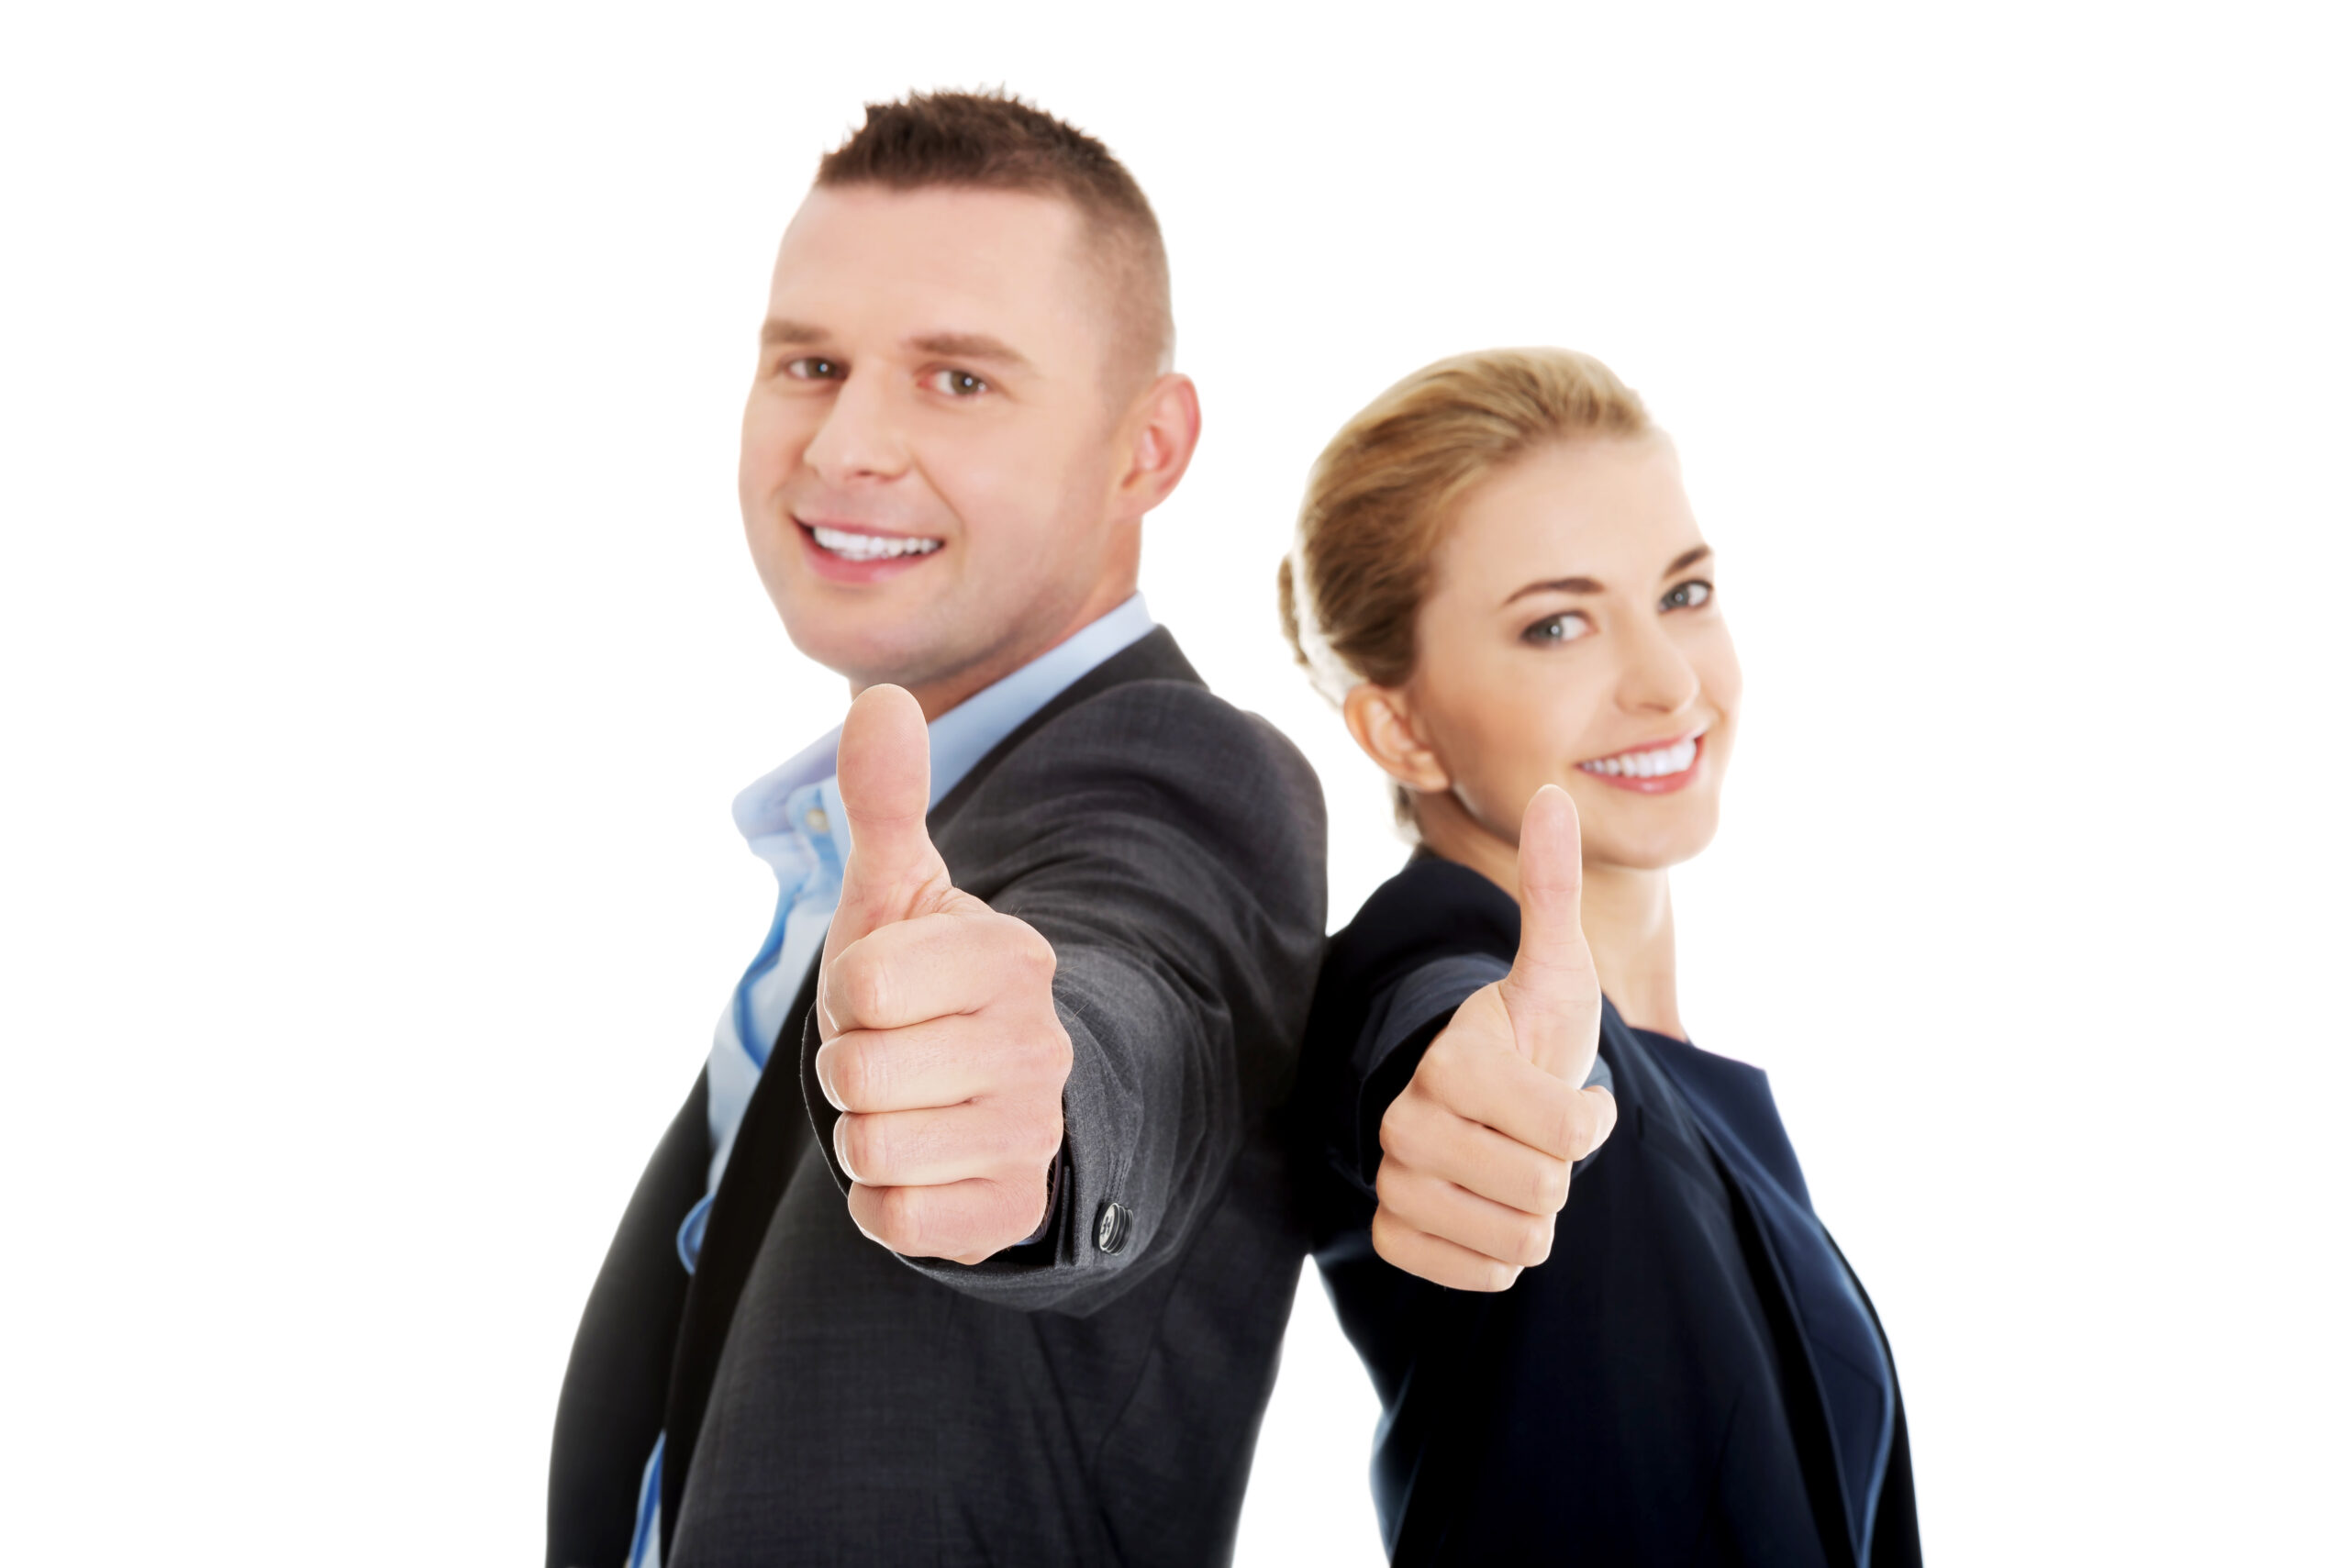 Business couple showing thumbs up.